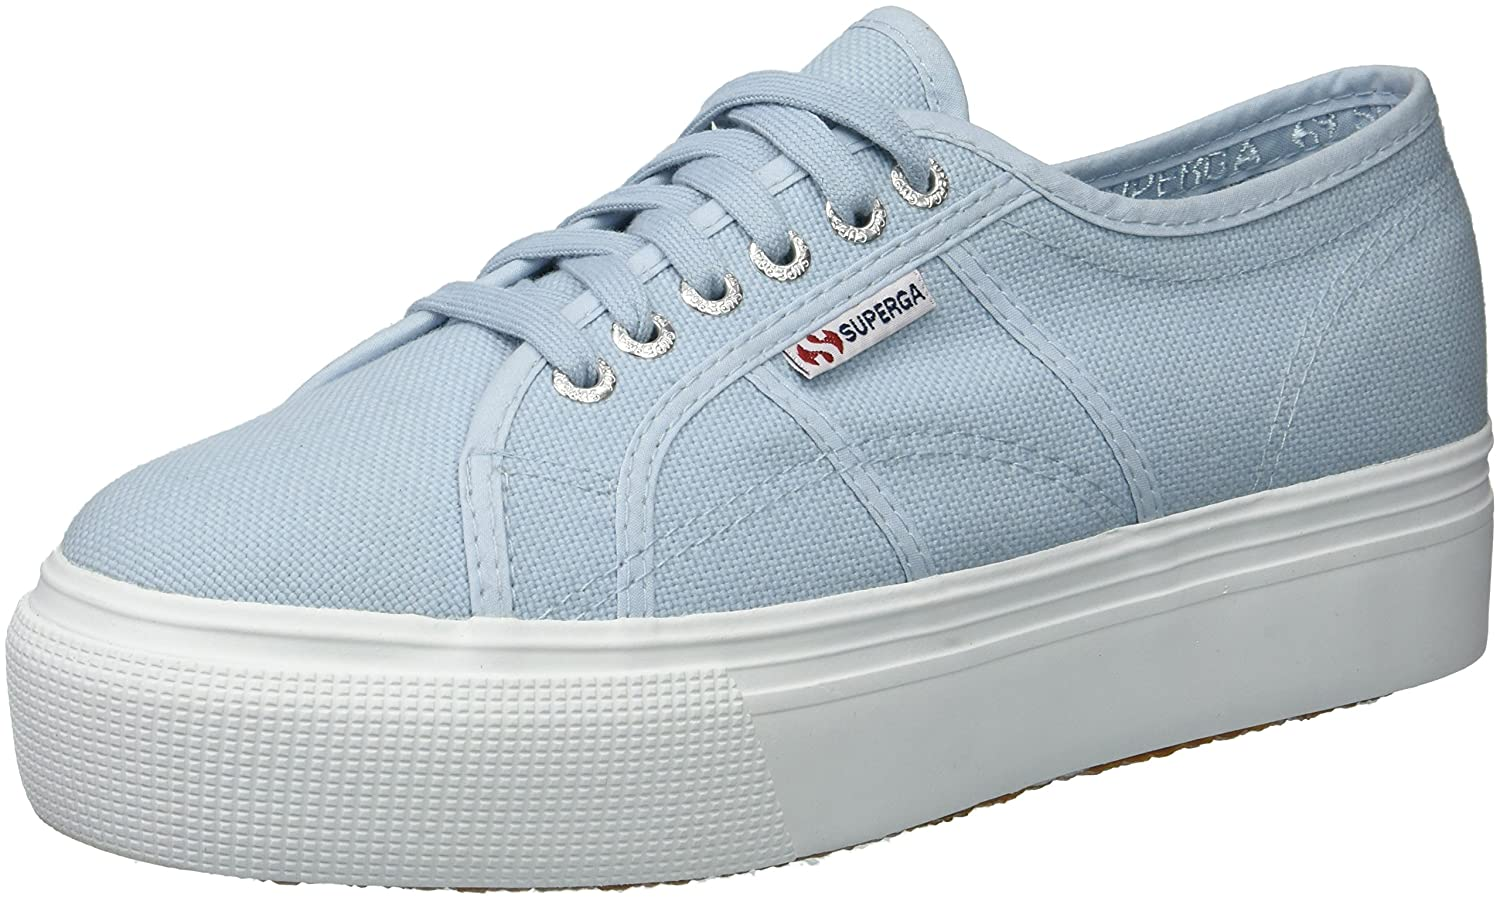 Superga Women's 2790 Acotw Fashion Sneaker B0789SSGWH 41.5 M US|Dusty Blue